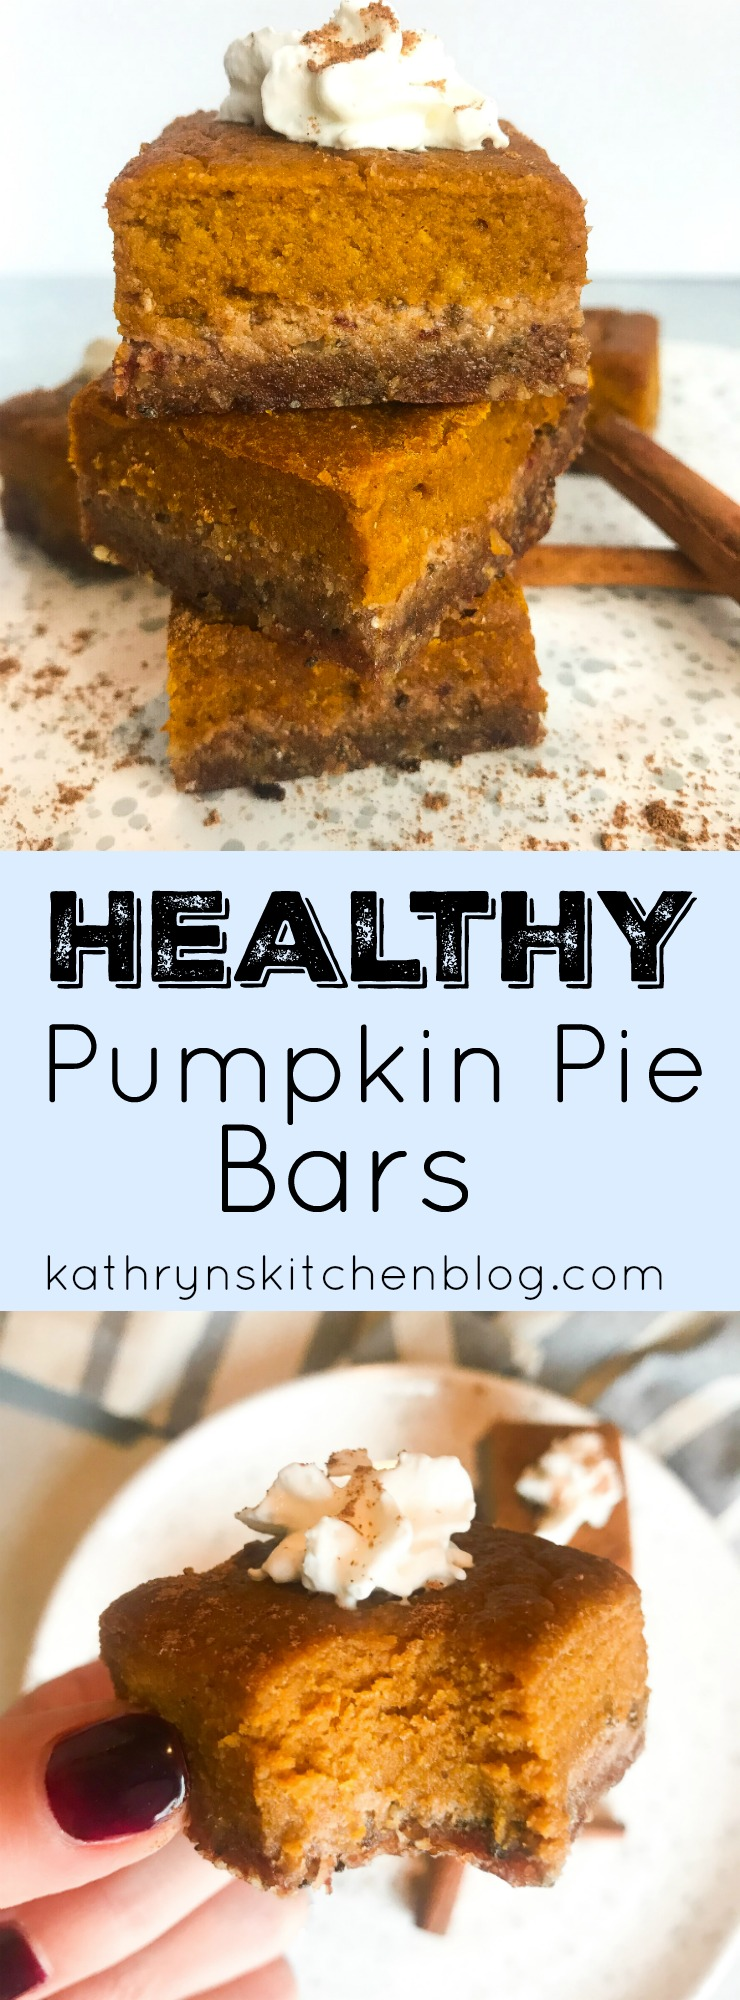 Pumpkin Pie Bars 3